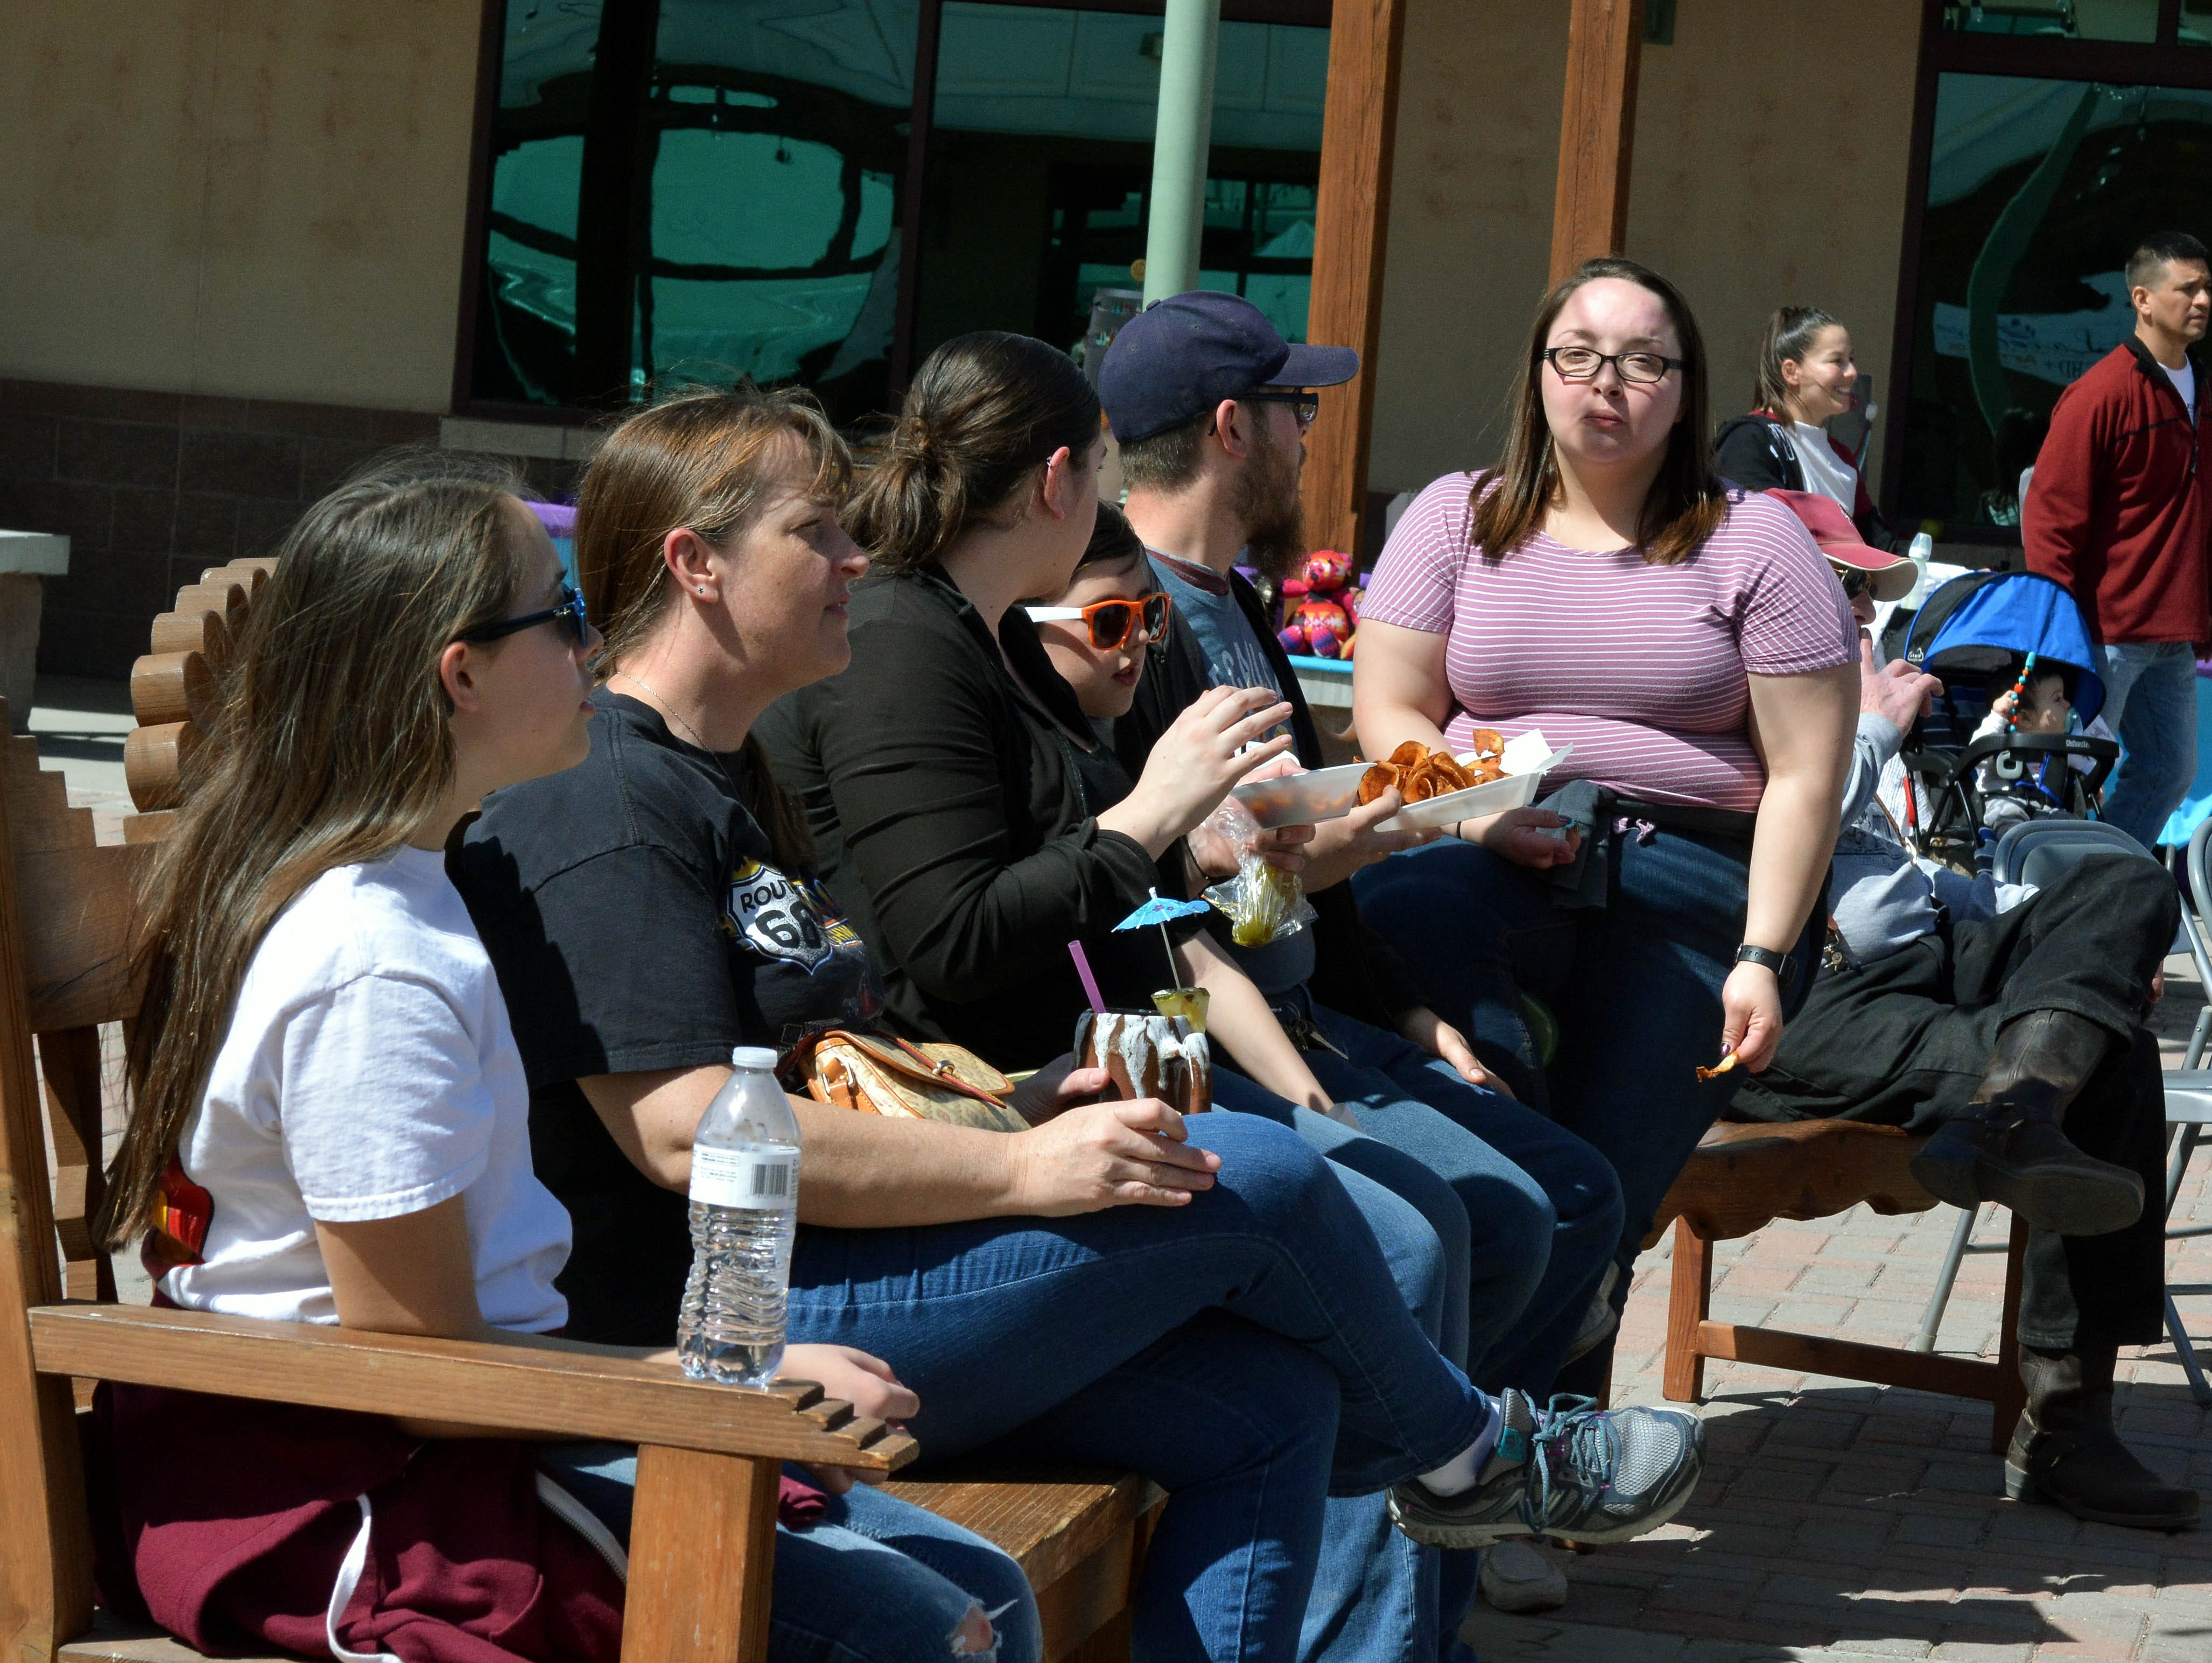 People gather in the courtyard of the New Mexico Farm and Ranch Heritage Museum to eat and listen to music at the 20th annual Cowboy Days on Saturday, March 2, 2019.